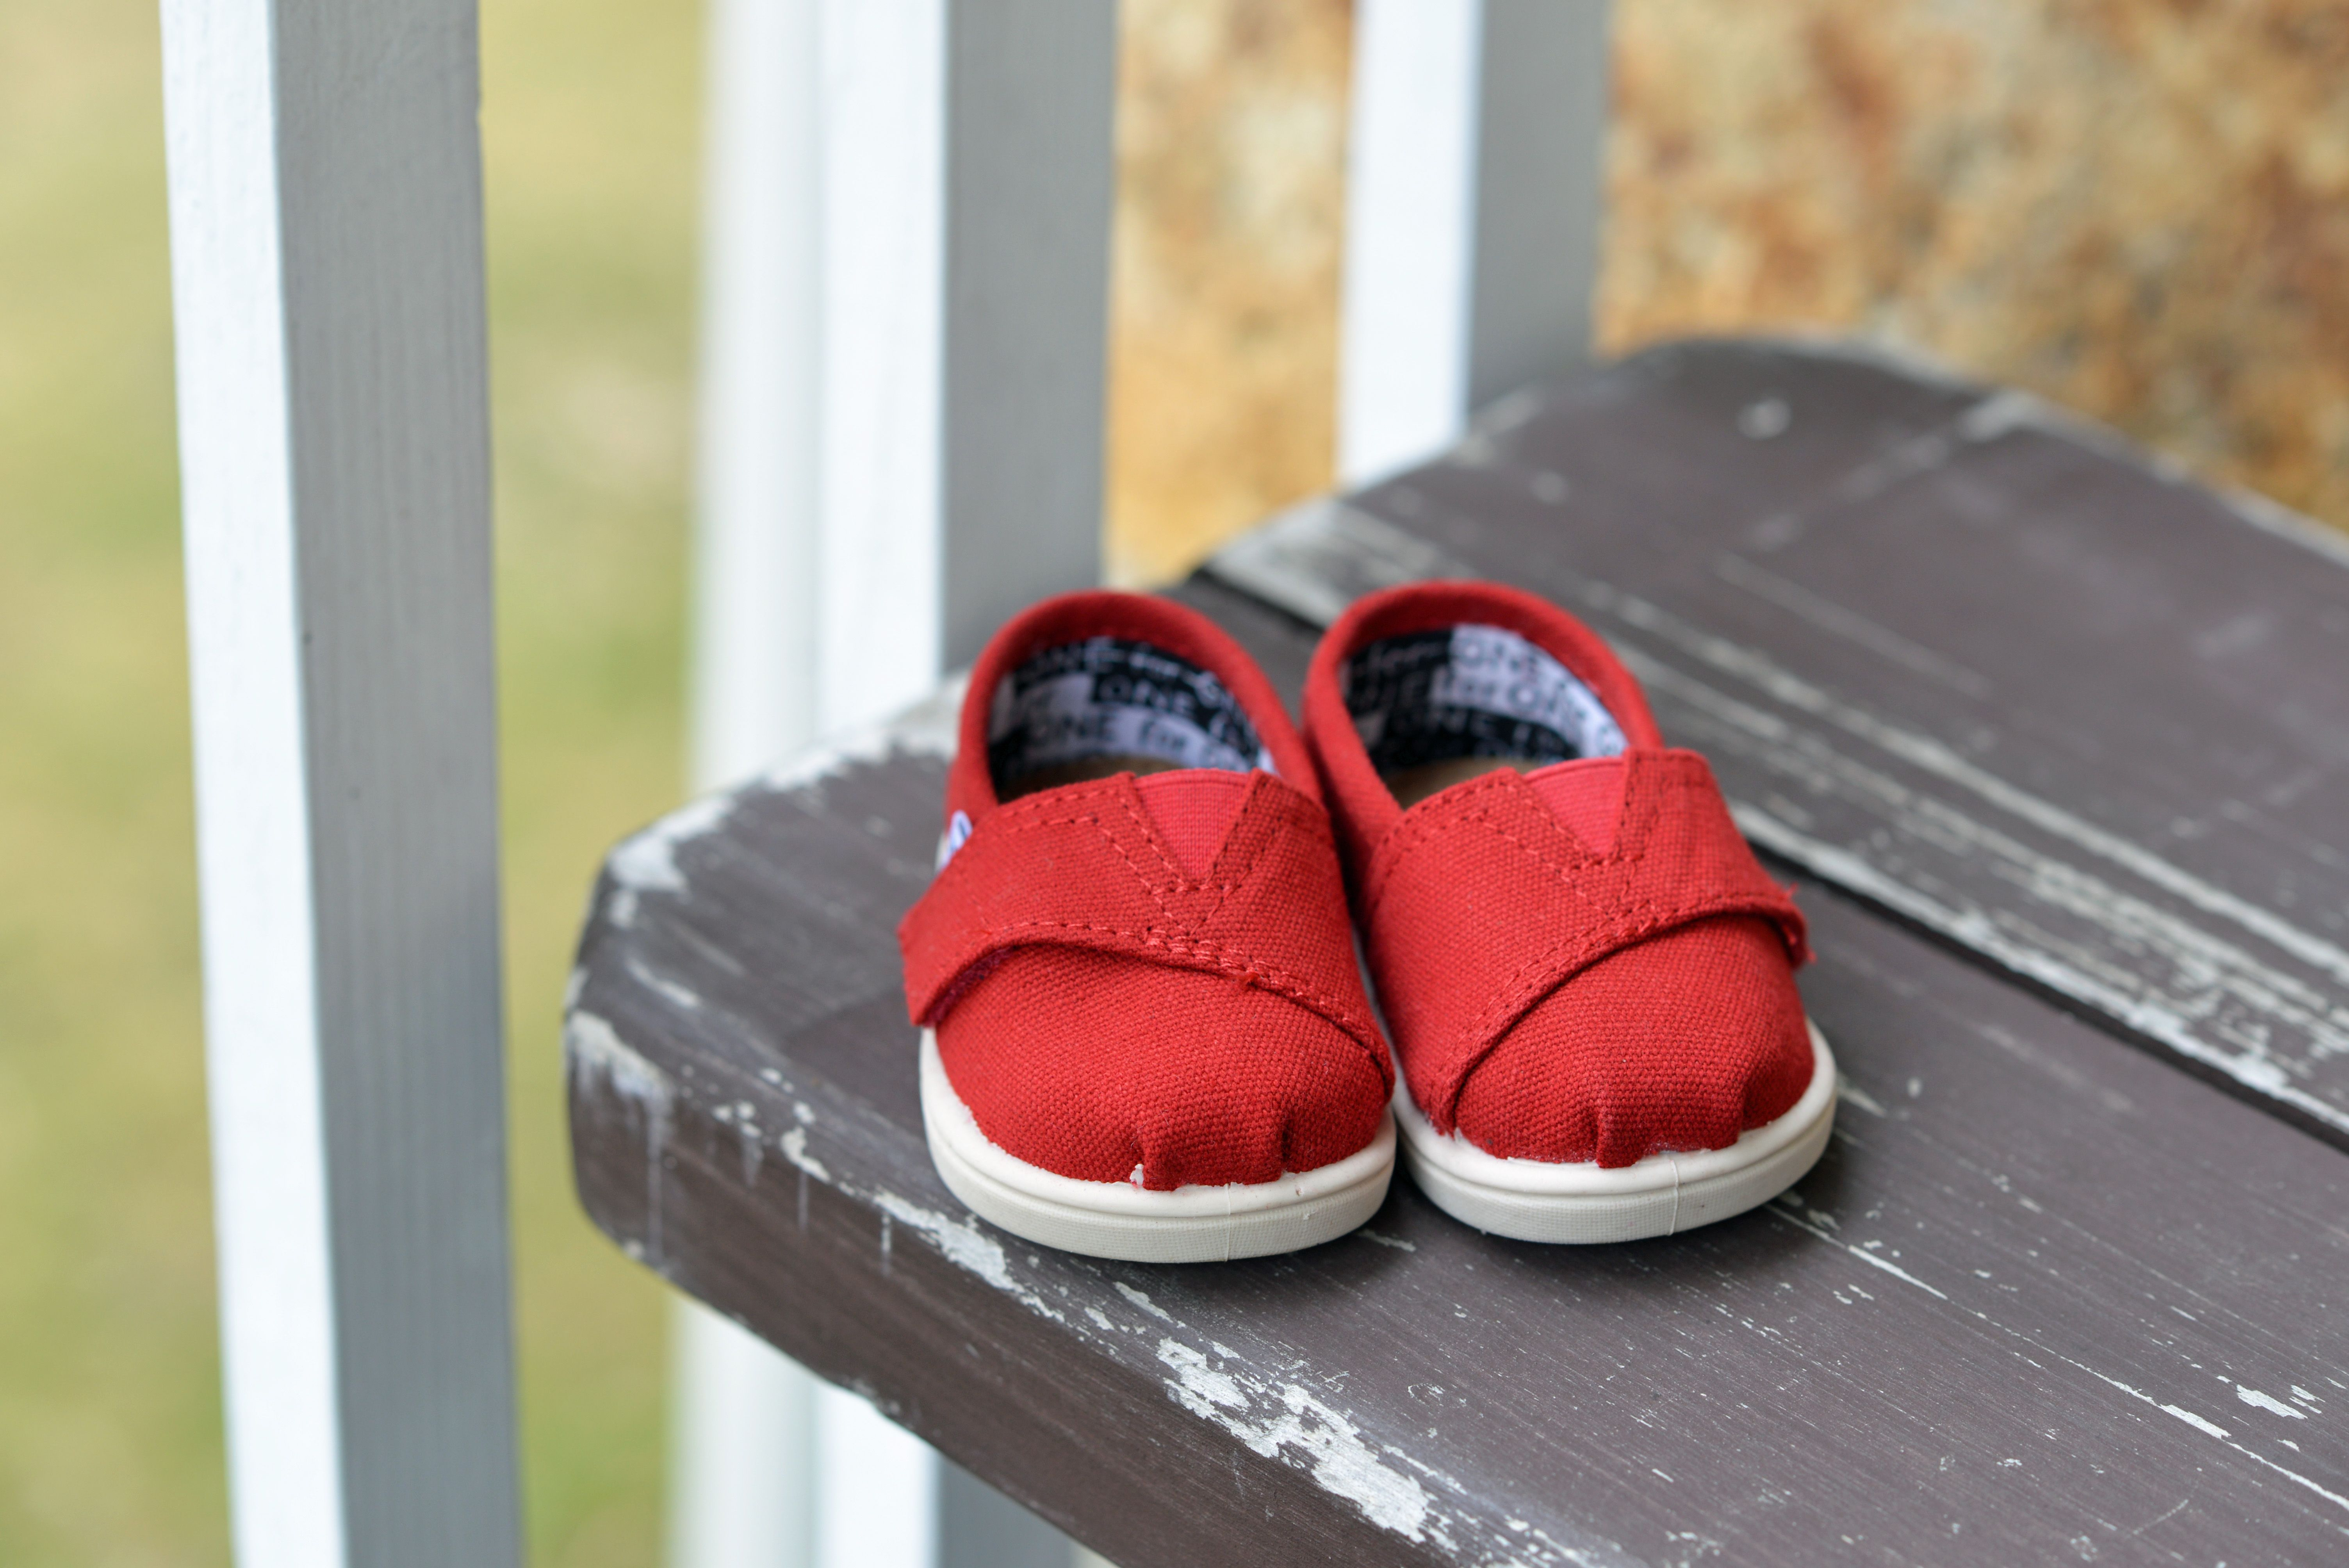 things and toms moccasin clothes baby moccasins cribs babies slippers pin crib shoes